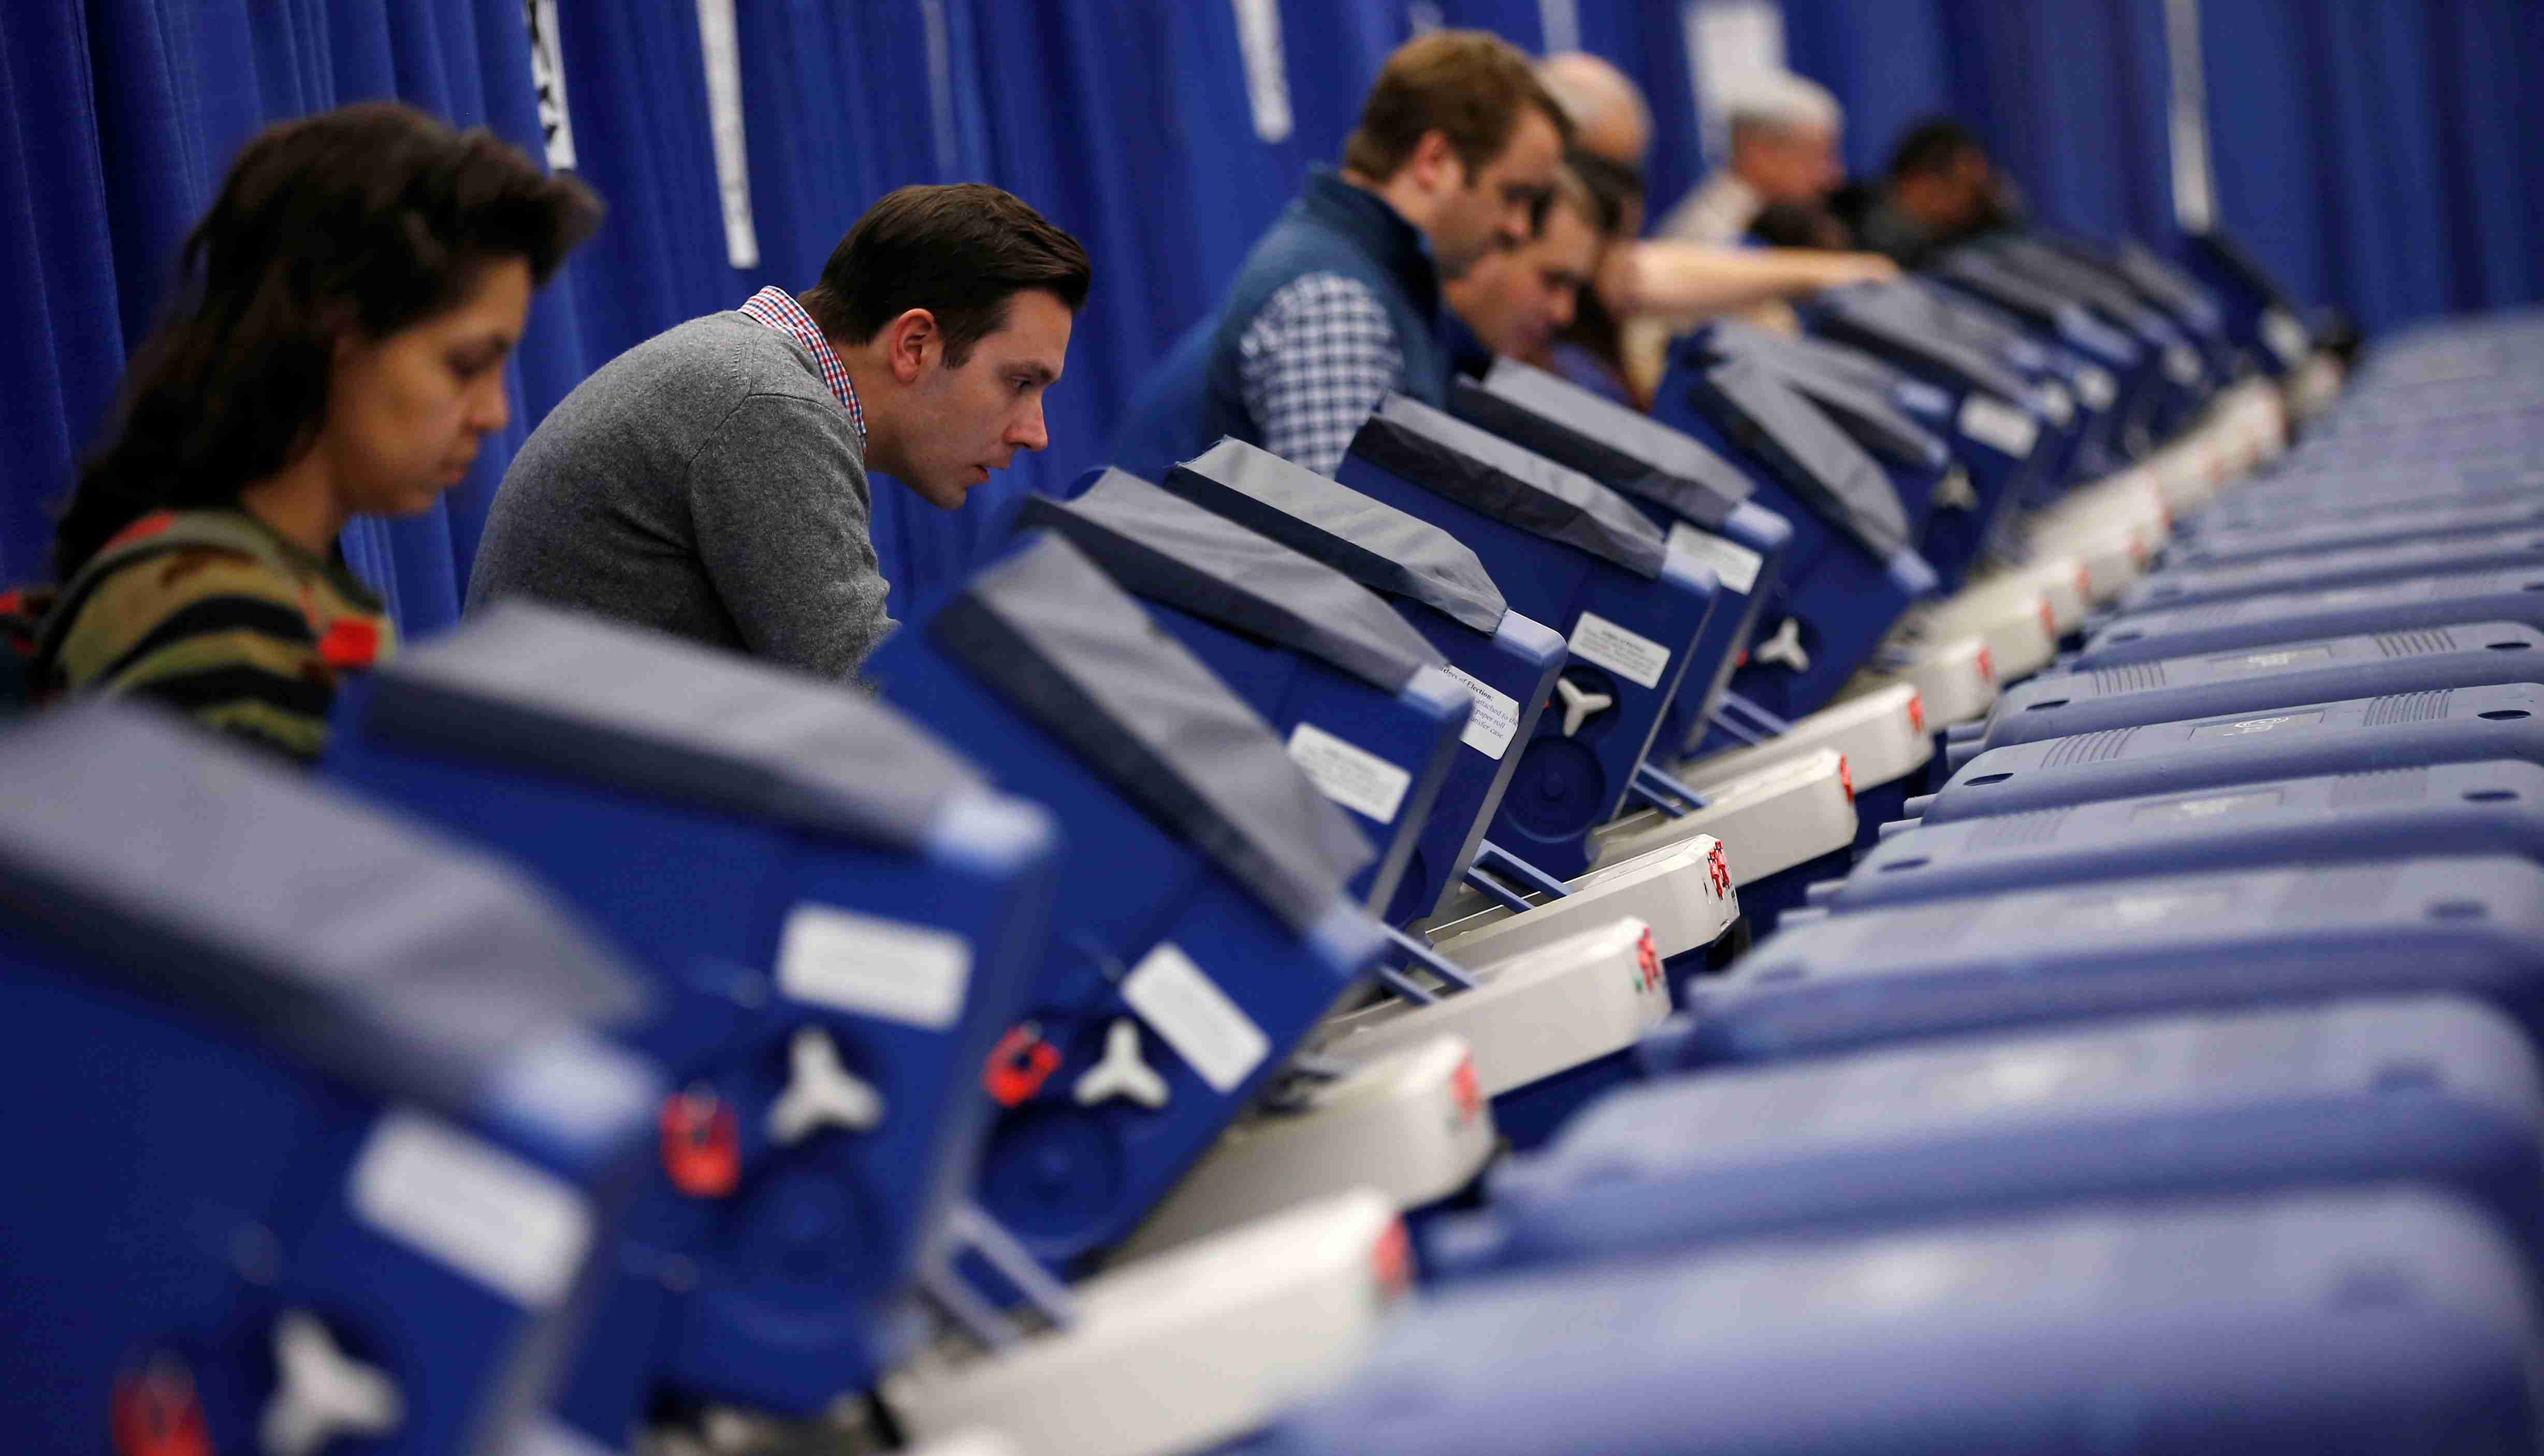 Voters cast their ballots during early voting in Chicago, Illinois, U.S.